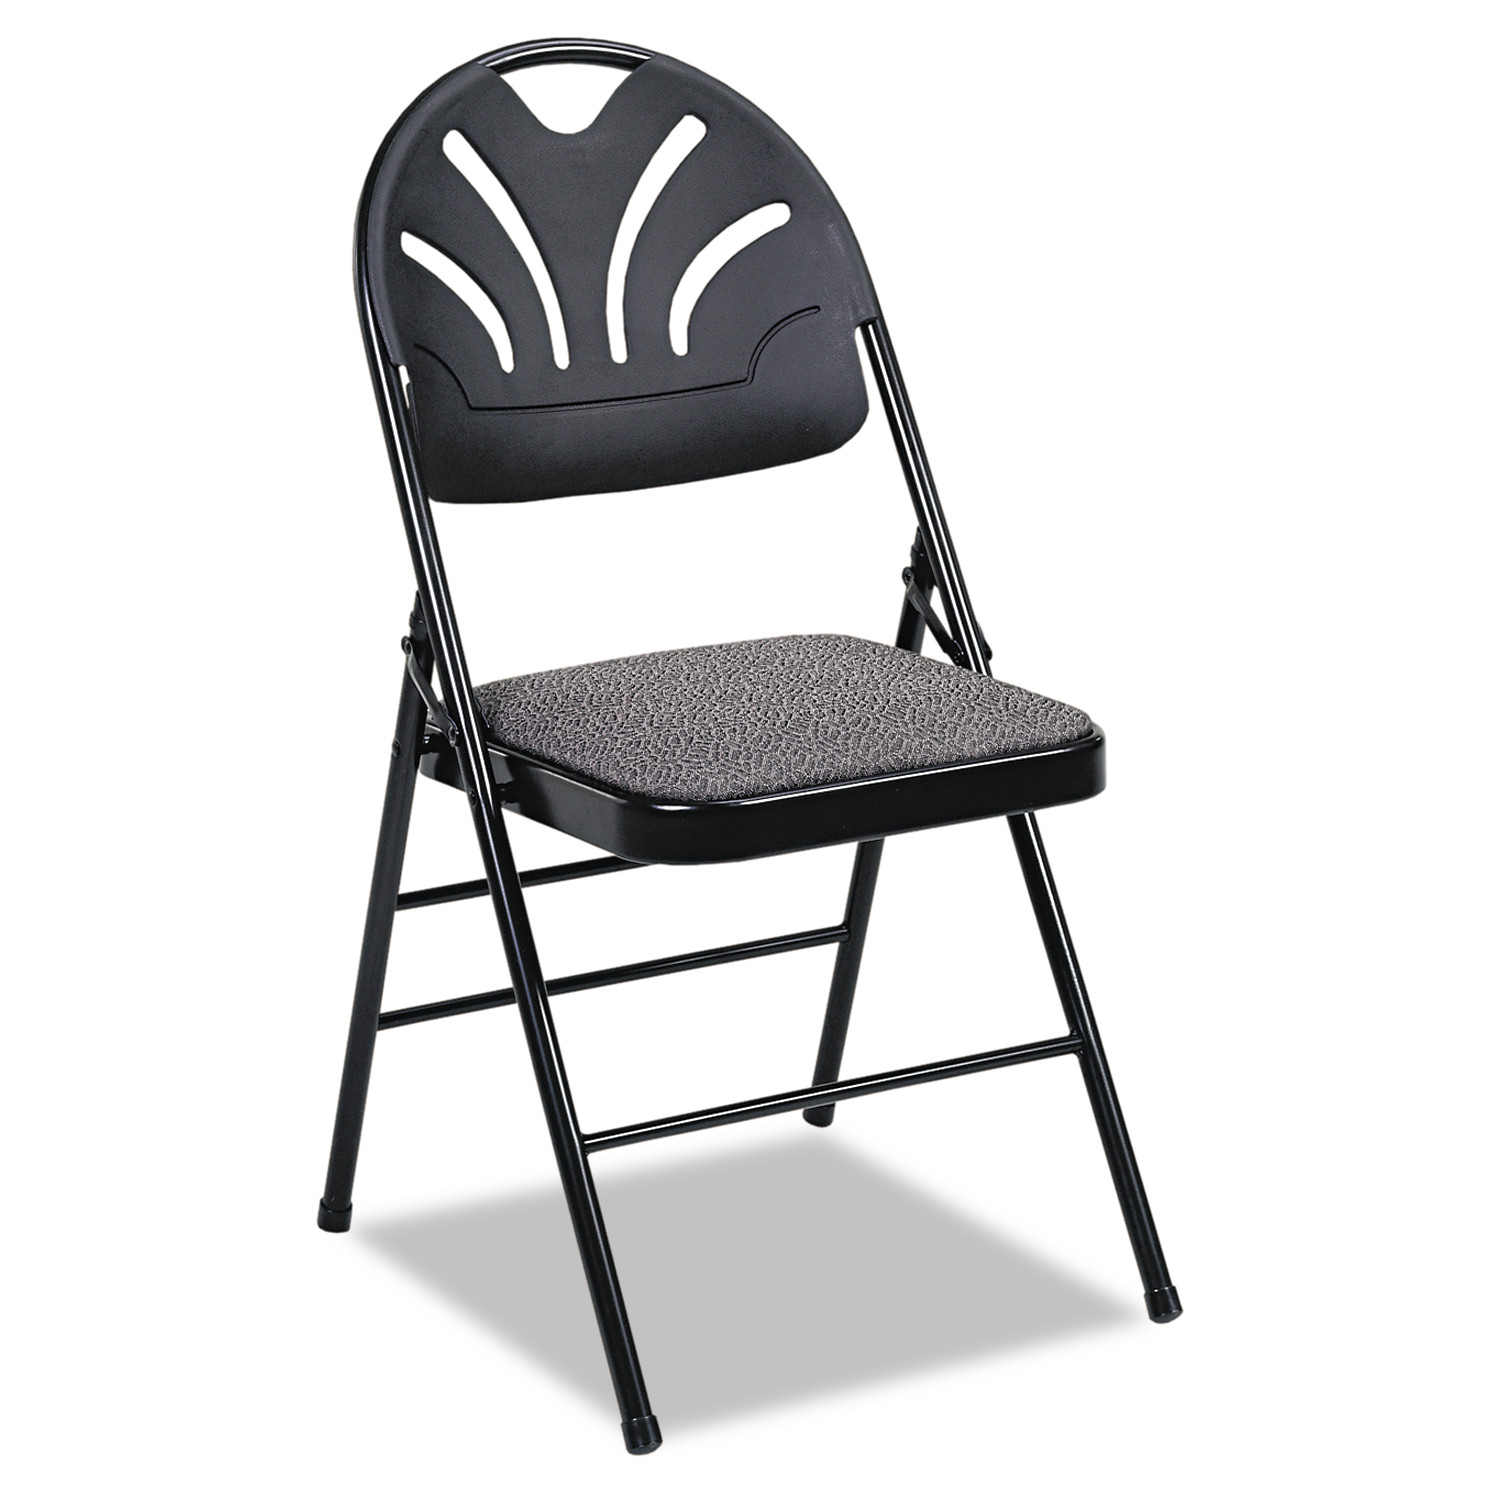 Cosco Fabric Padded Seat/Molded Fan Back Folding Chair, Kinnear Black, 4 Per Carton